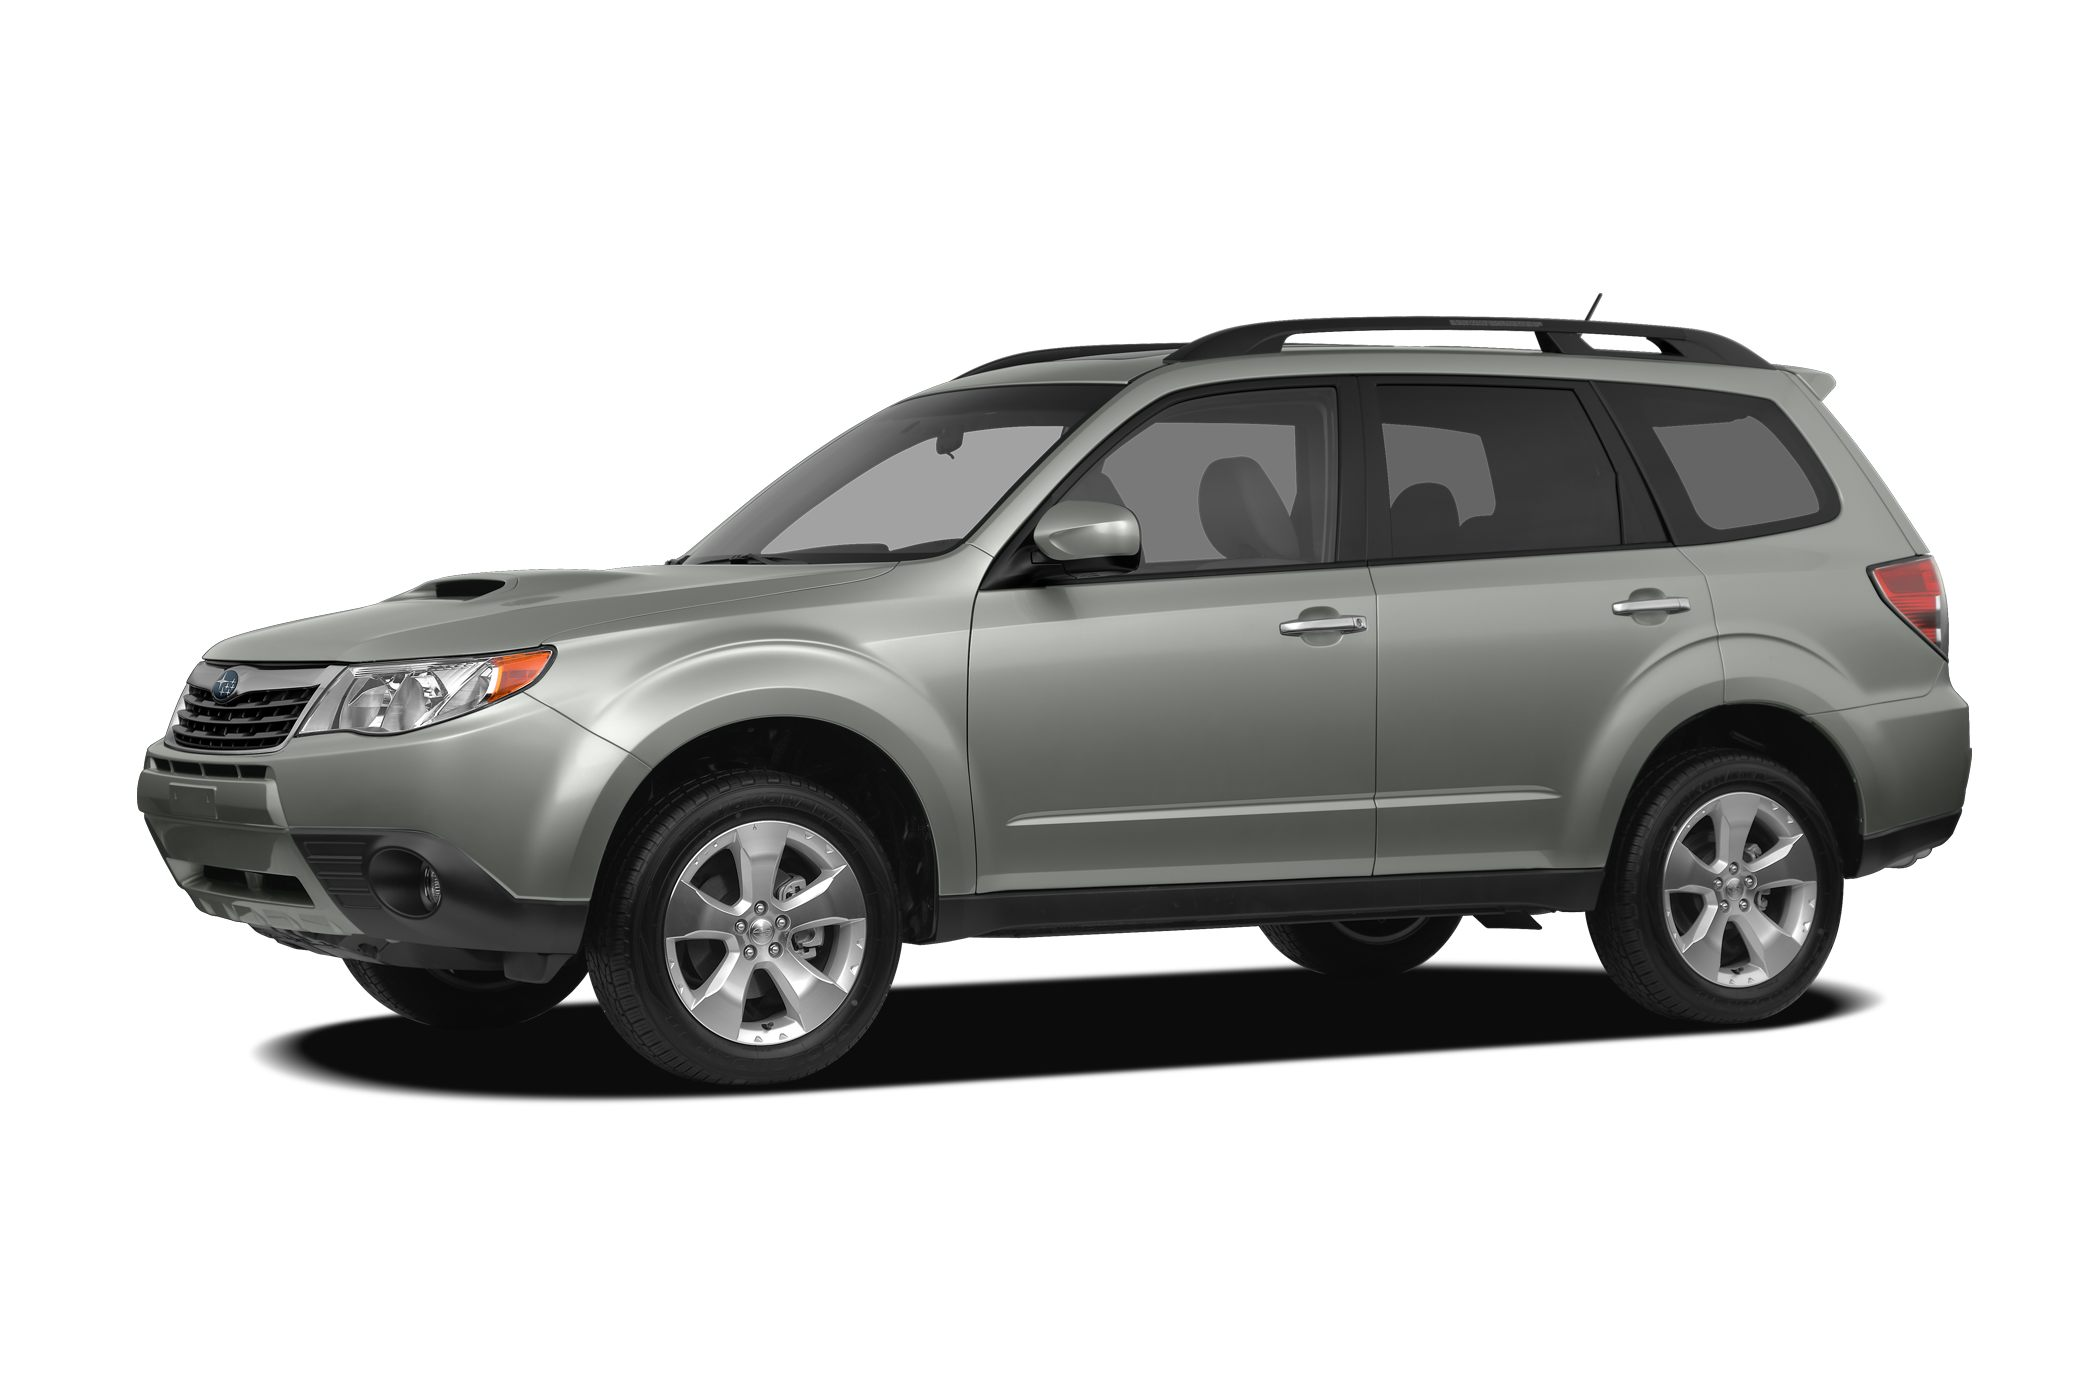 2010 Subaru Forester 2.5 X SUV for sale in Little Rock for $16,900 with 77,000 miles.